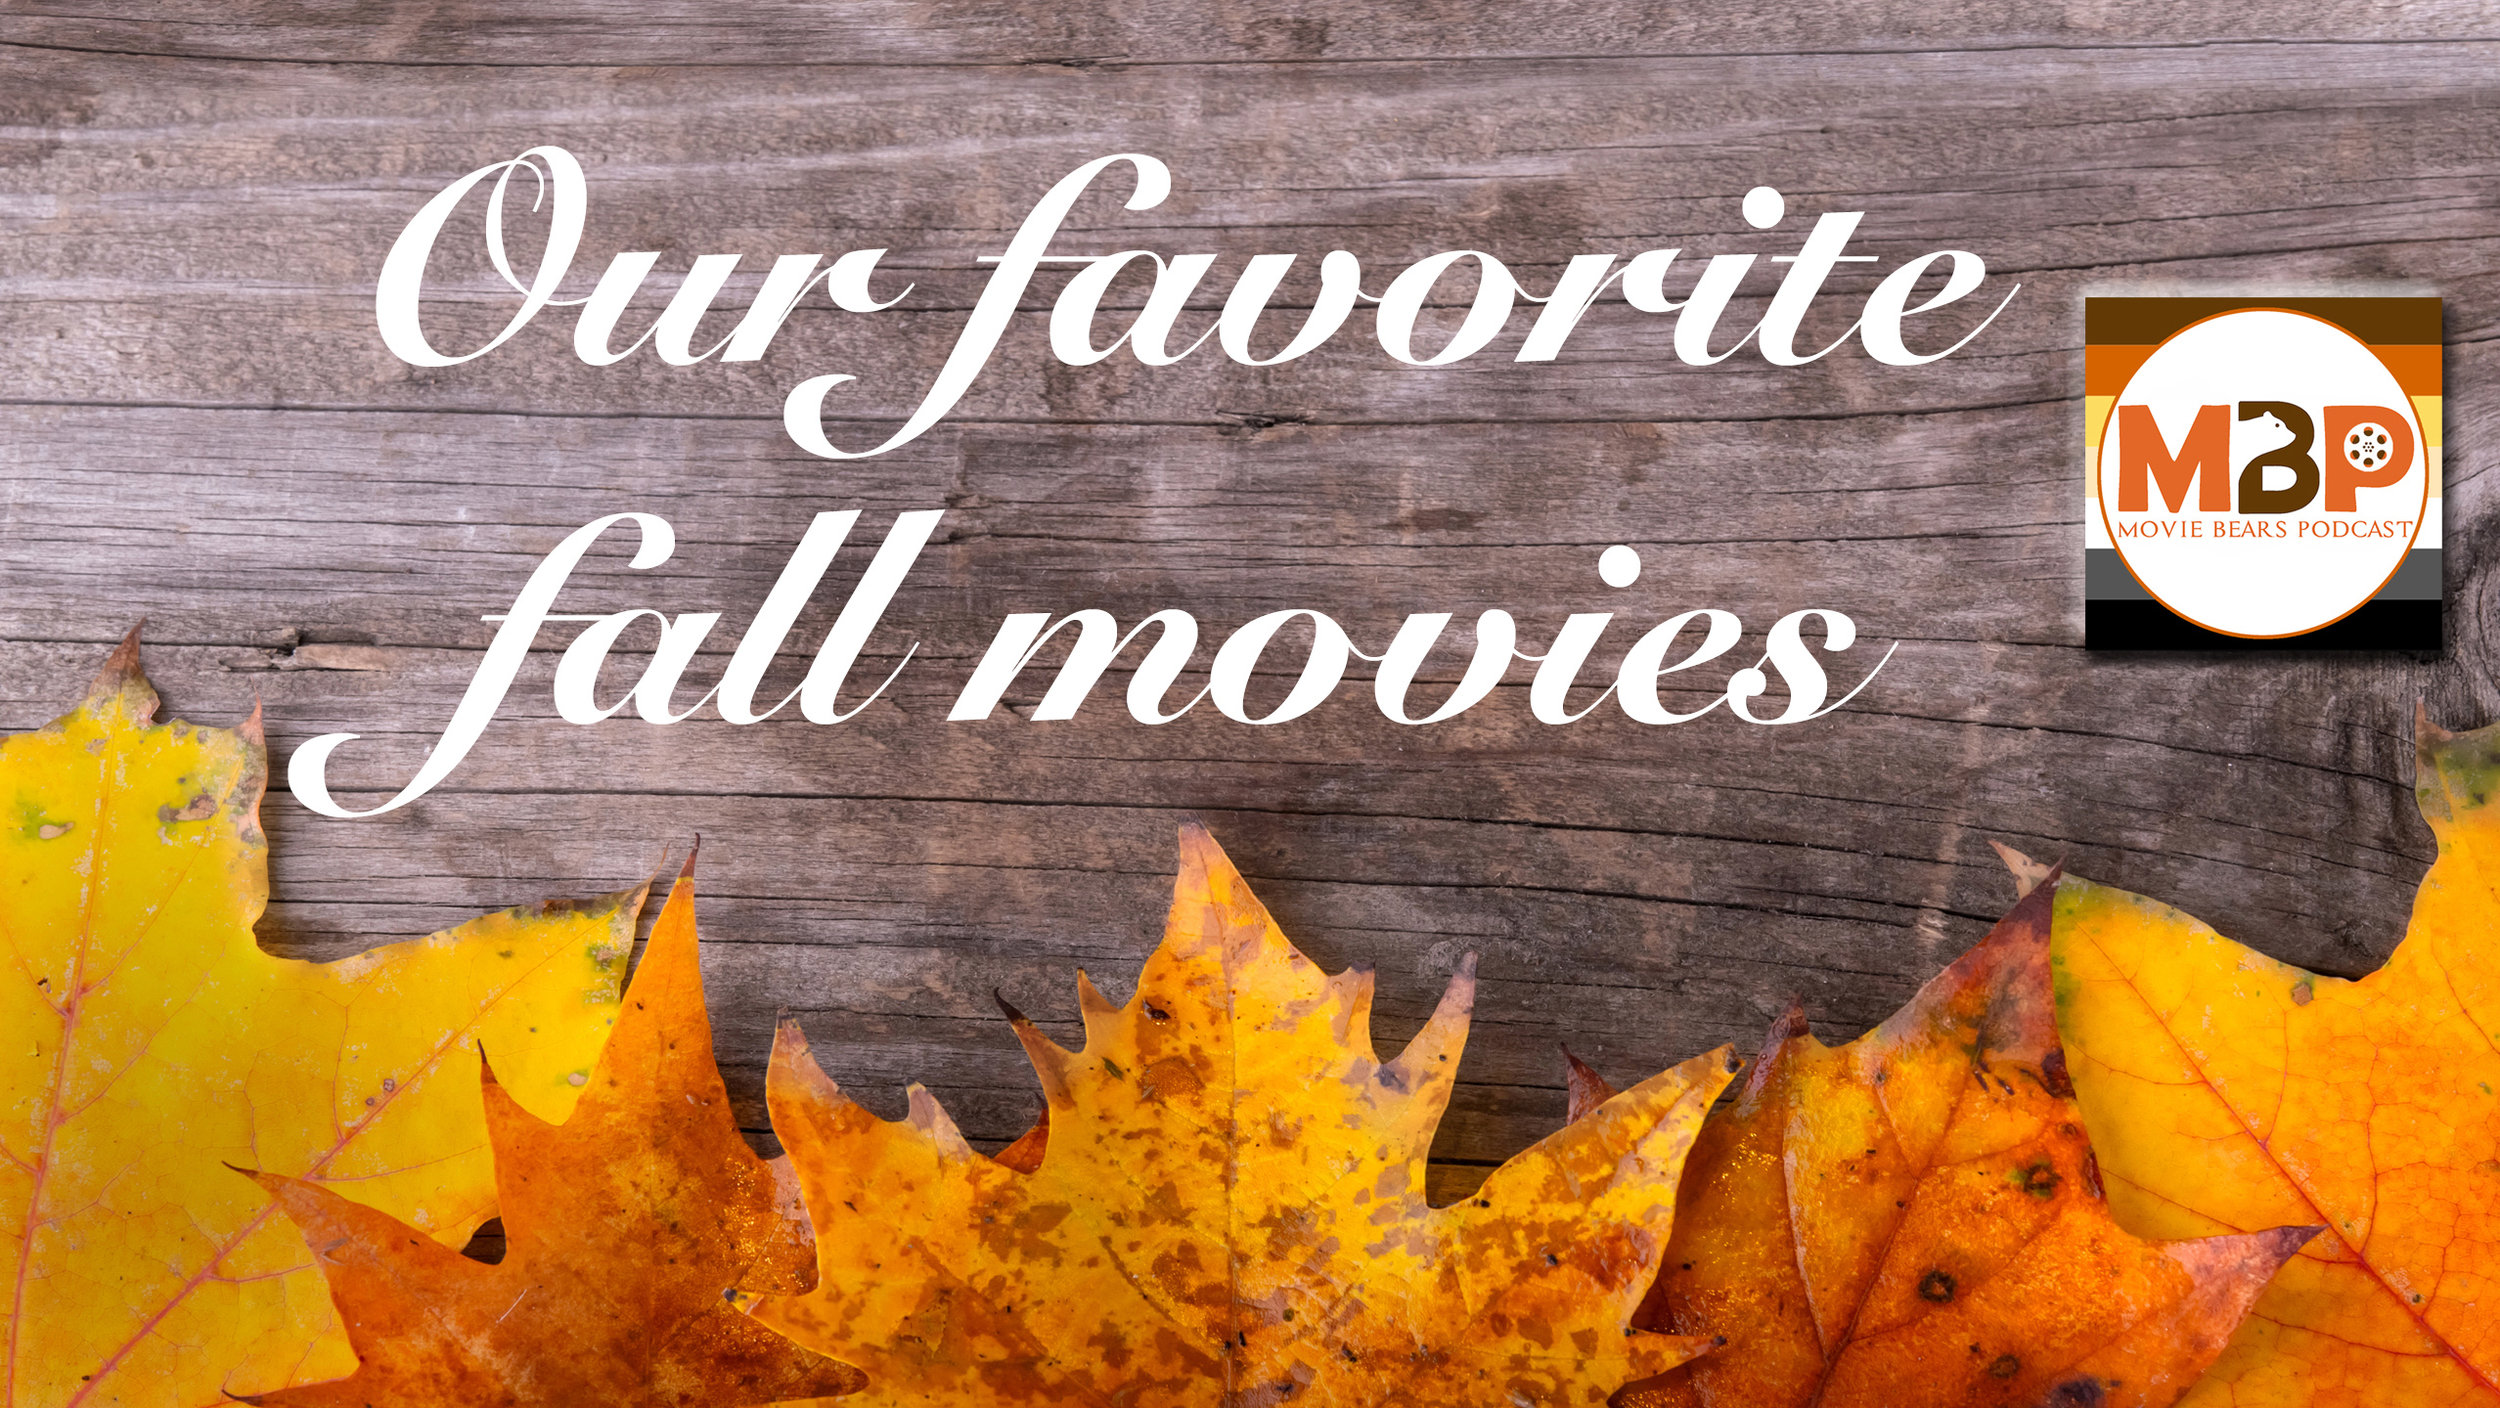 MBP e293 - 'Searching' For Our Favorite Fall Movies (9/4/18)    The leaves are turning, the pumpkin spice and cider are brewing, and we're cuddling up on the couch for some of our absolute favorite fall movies! Join us for our countdown of a few of our faves before we tackle 'Searching,' the new John Cho mystery / thriller about a father trying desperately to discover why his teenage daughter has gone missing.